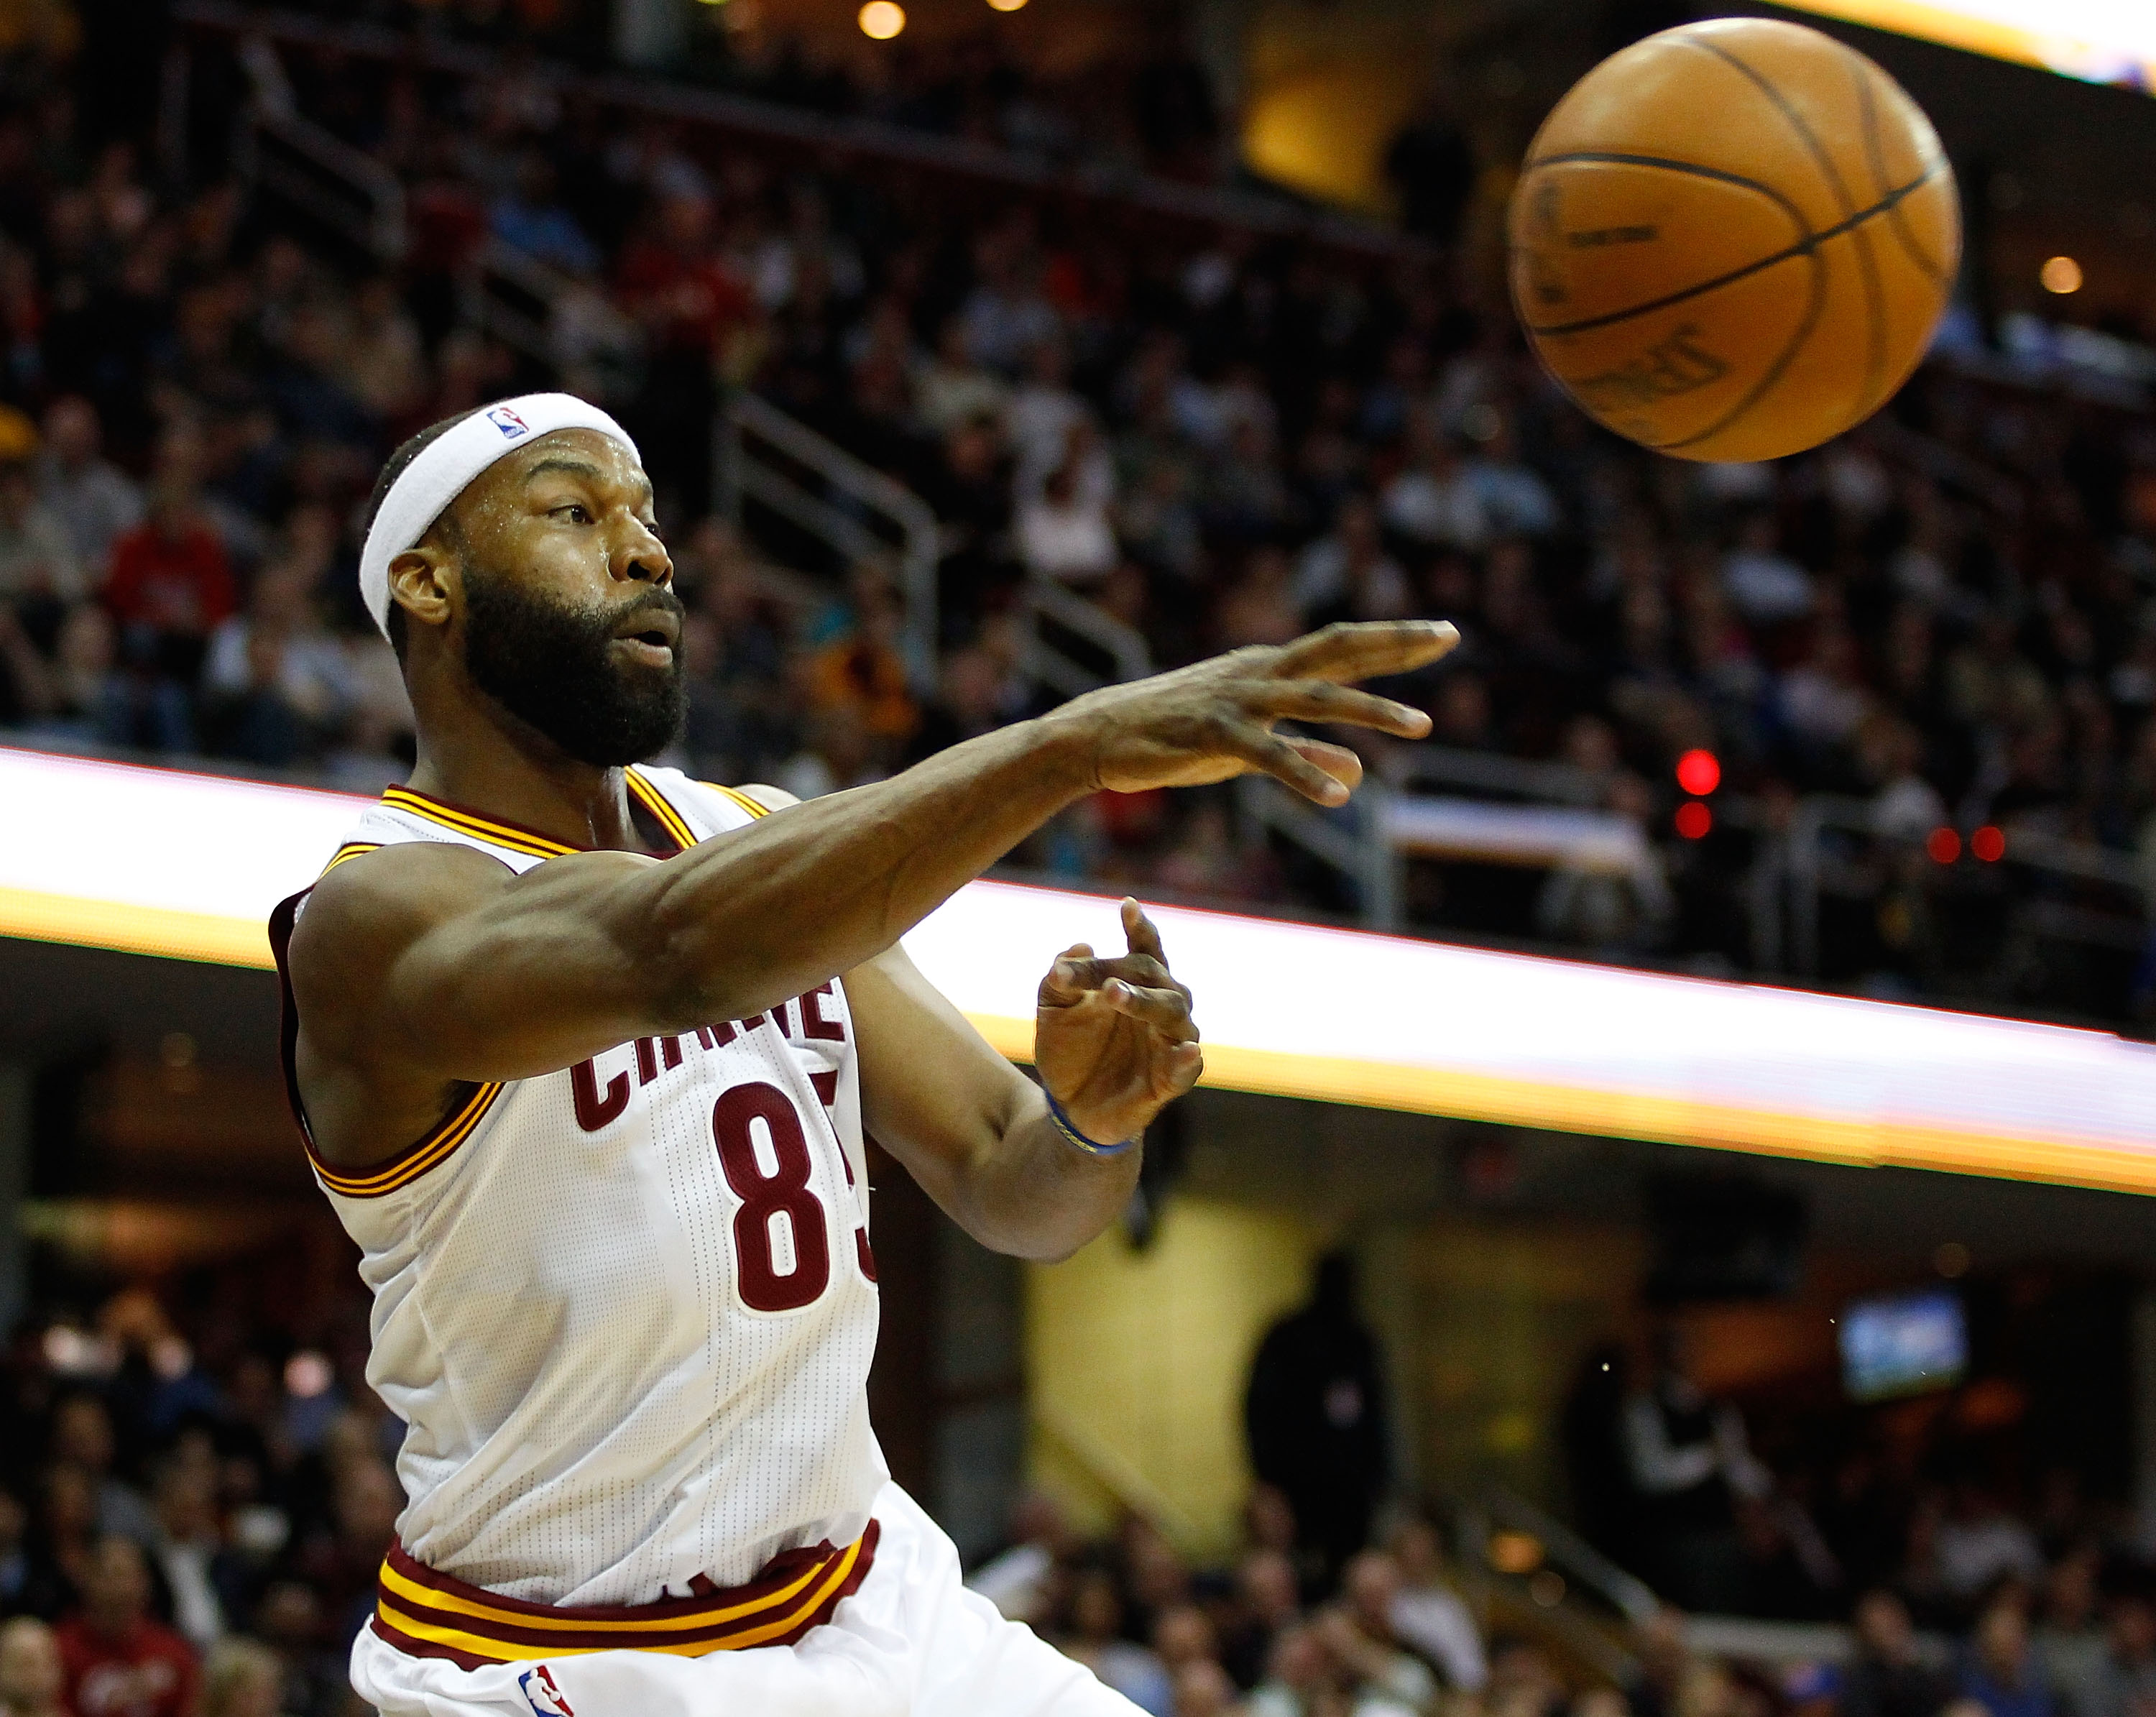 CLEVELAND - MARCH 29: Baron Davis #85 of the Cleveland Cavaliers keeps the ball inbounds during the game against the Miami Heat on March 29, 2011 at Quicken Loans Arena in Cleveland, Ohio. NOTE TO USER: User expressly acknowledges and agrees that, by down